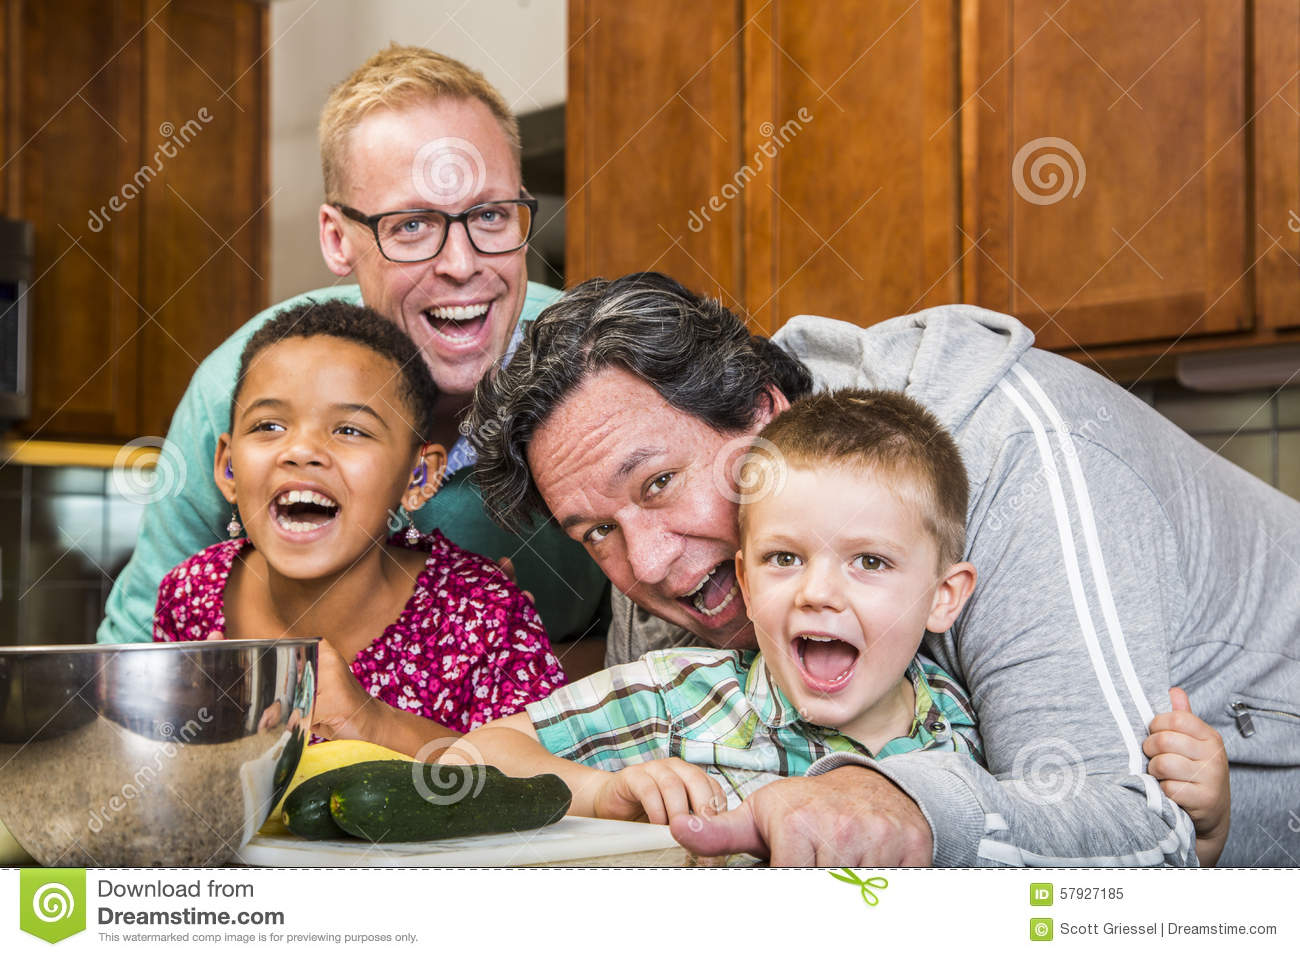 Laughing Family With Gay Dads In Kitchen Stock Photo - Image: 57927185